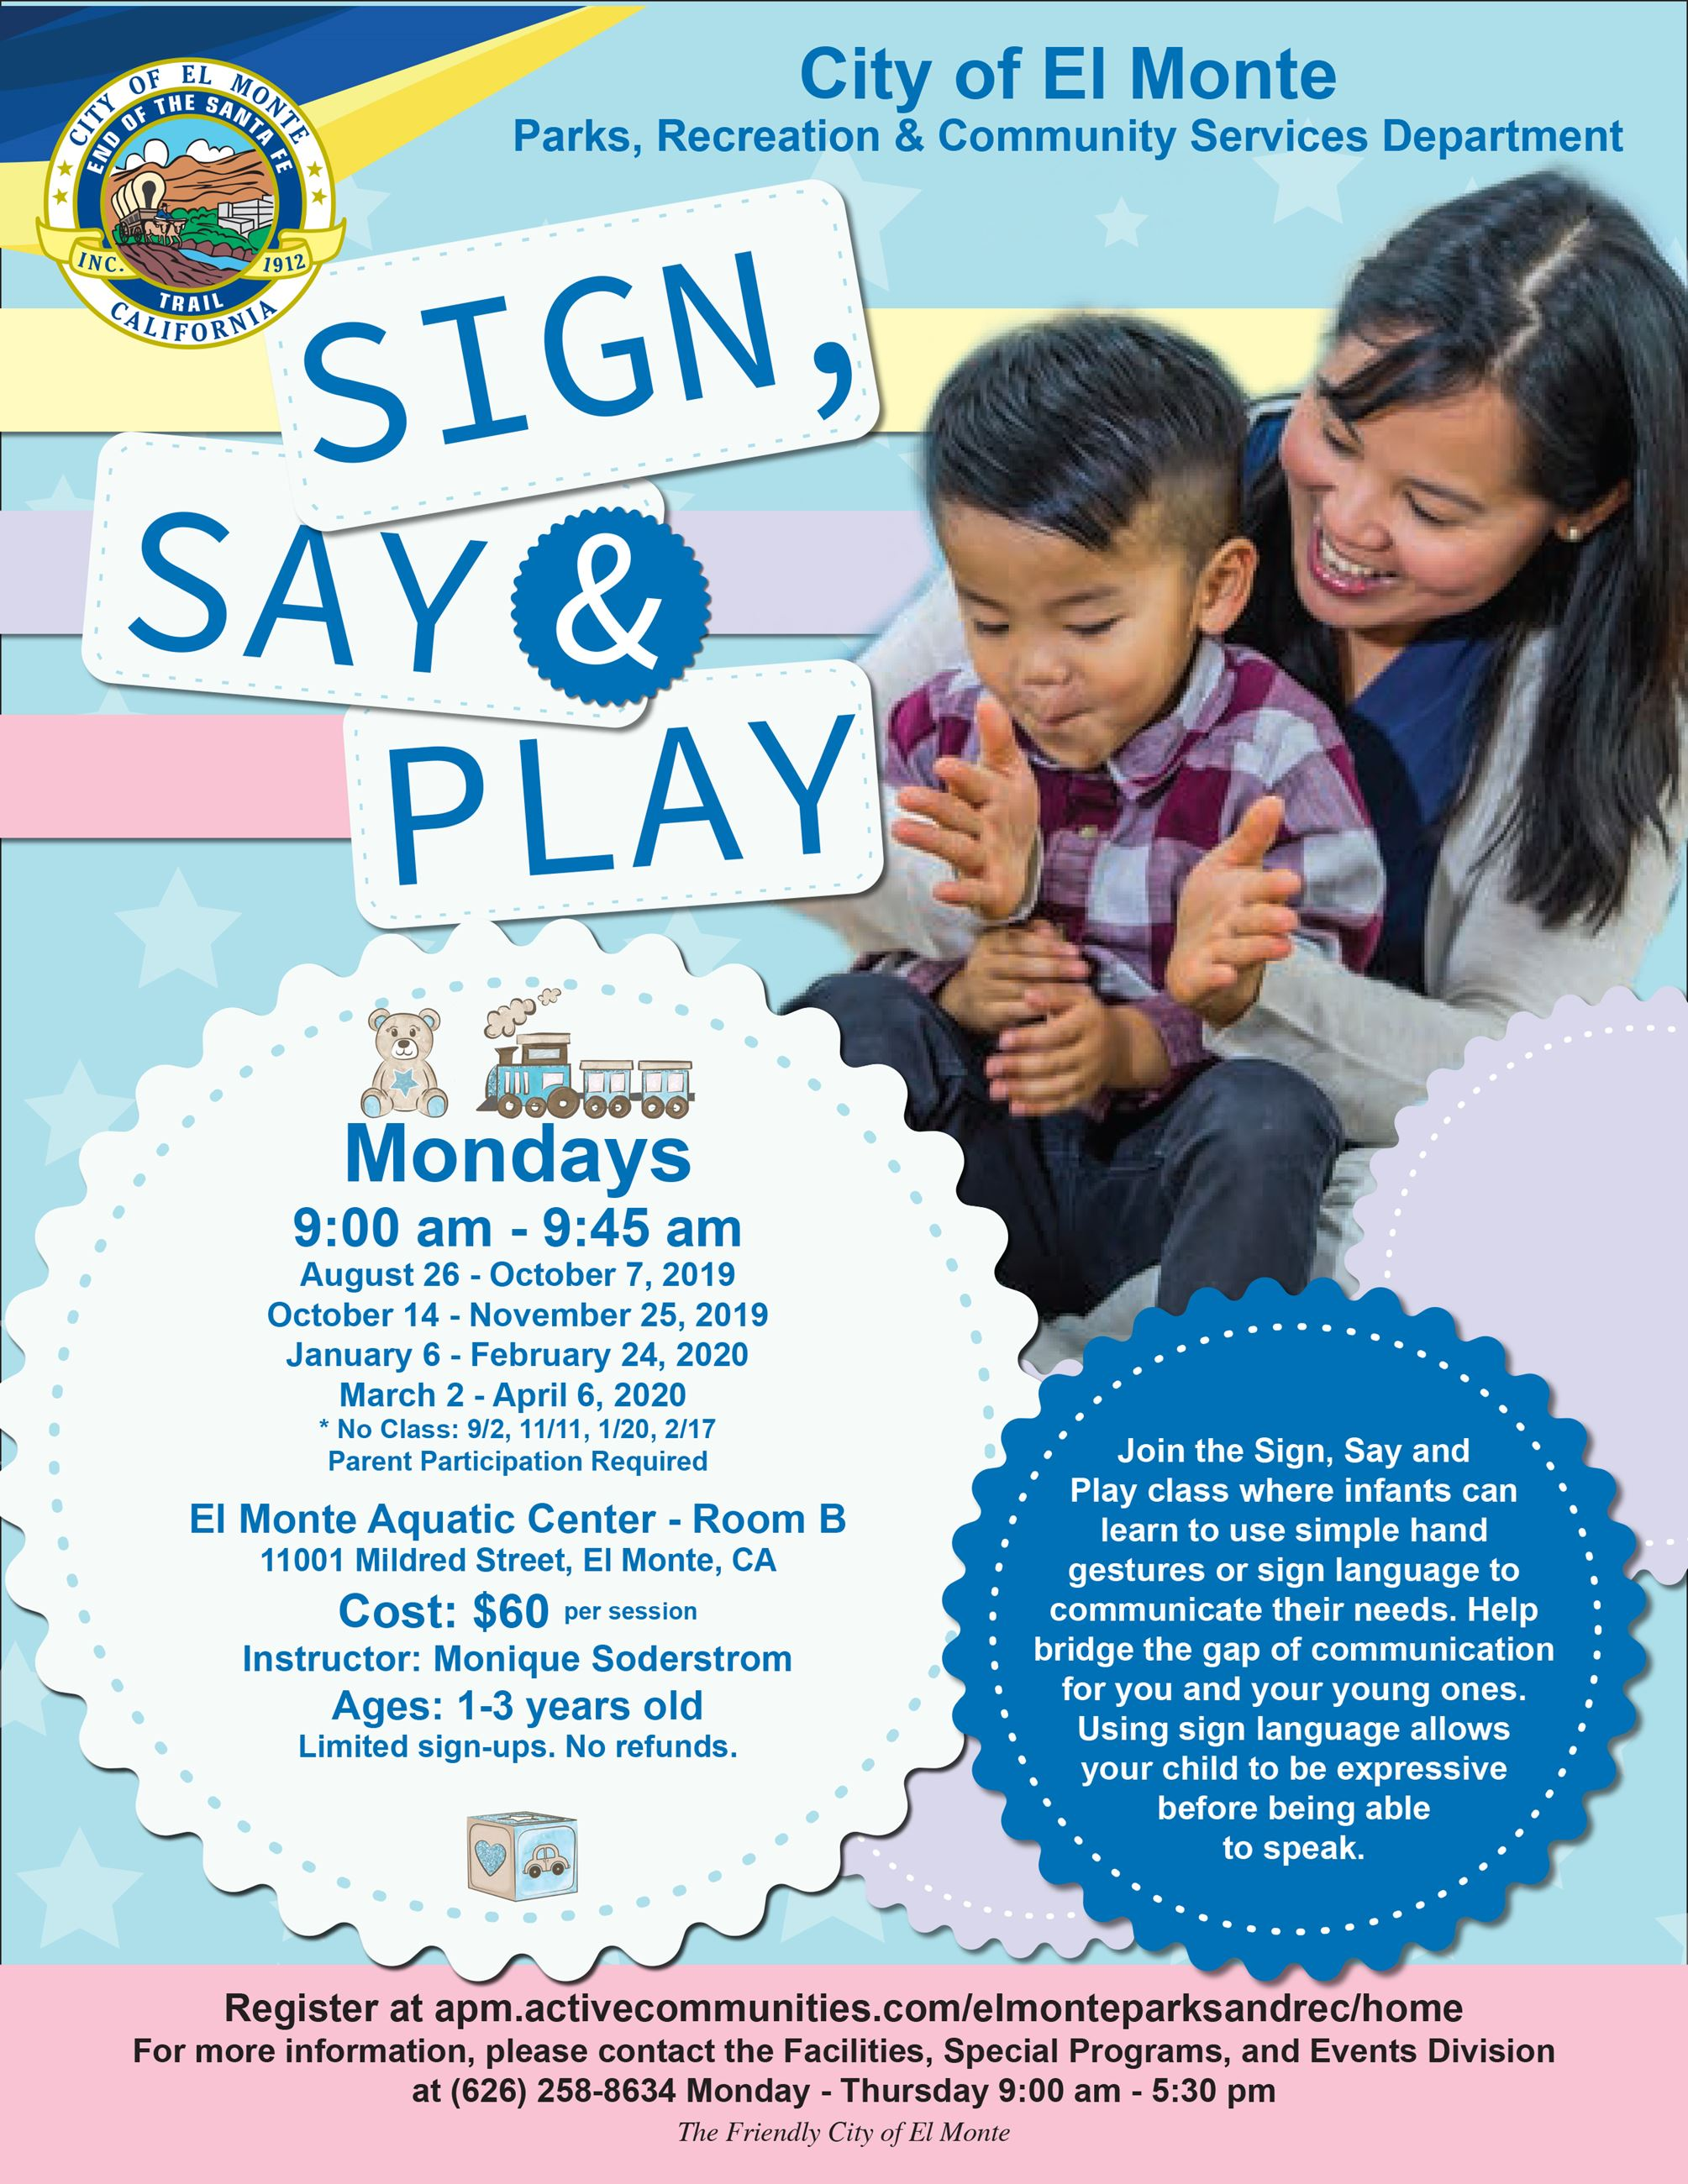 2019_SignSayPlay_Flyer_82119_D